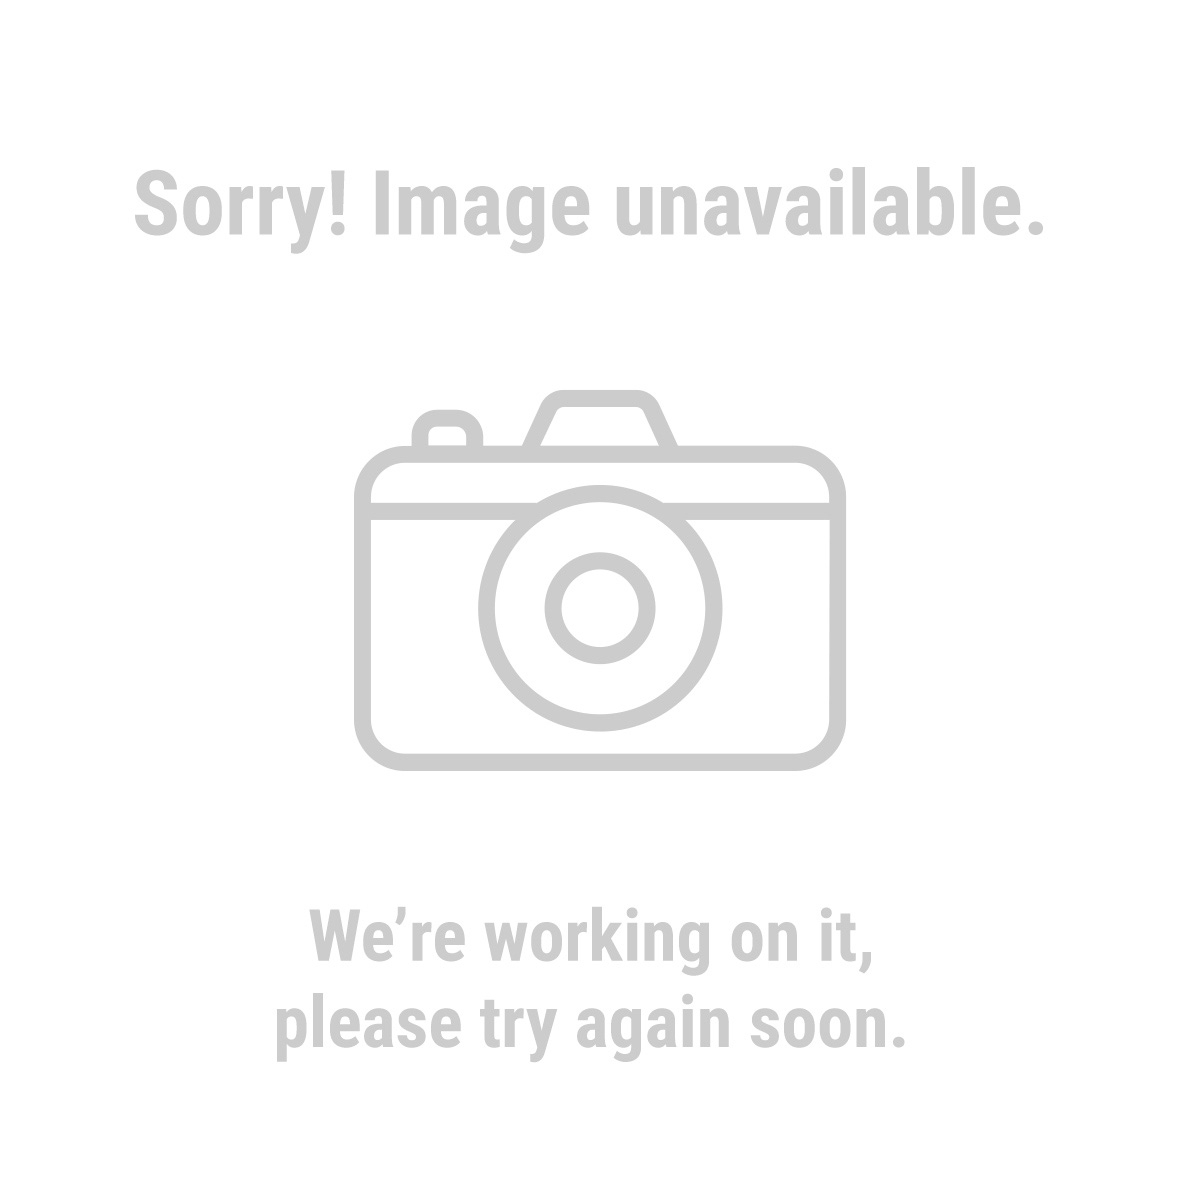 Gordon 94555 20-60 x 60mm Spotting Scope with Tripod